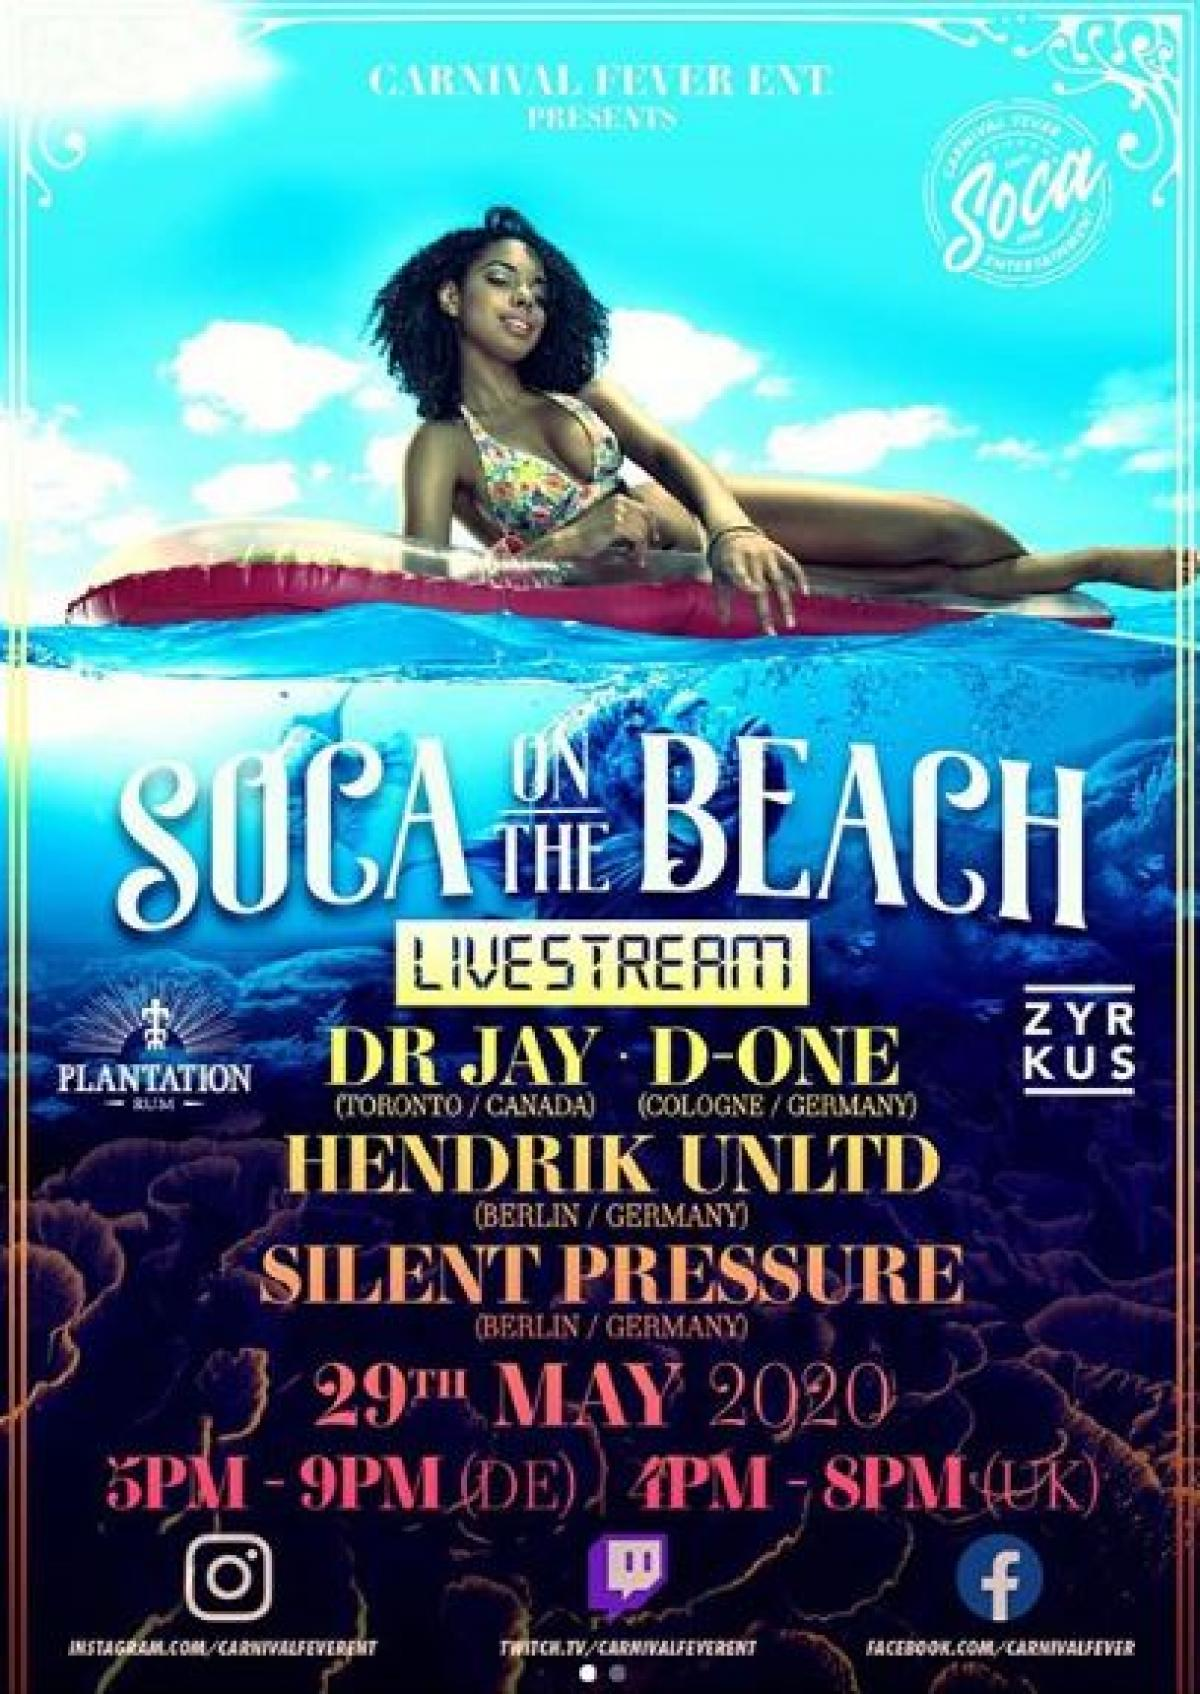 Soca On The Beach flyer or graphic.